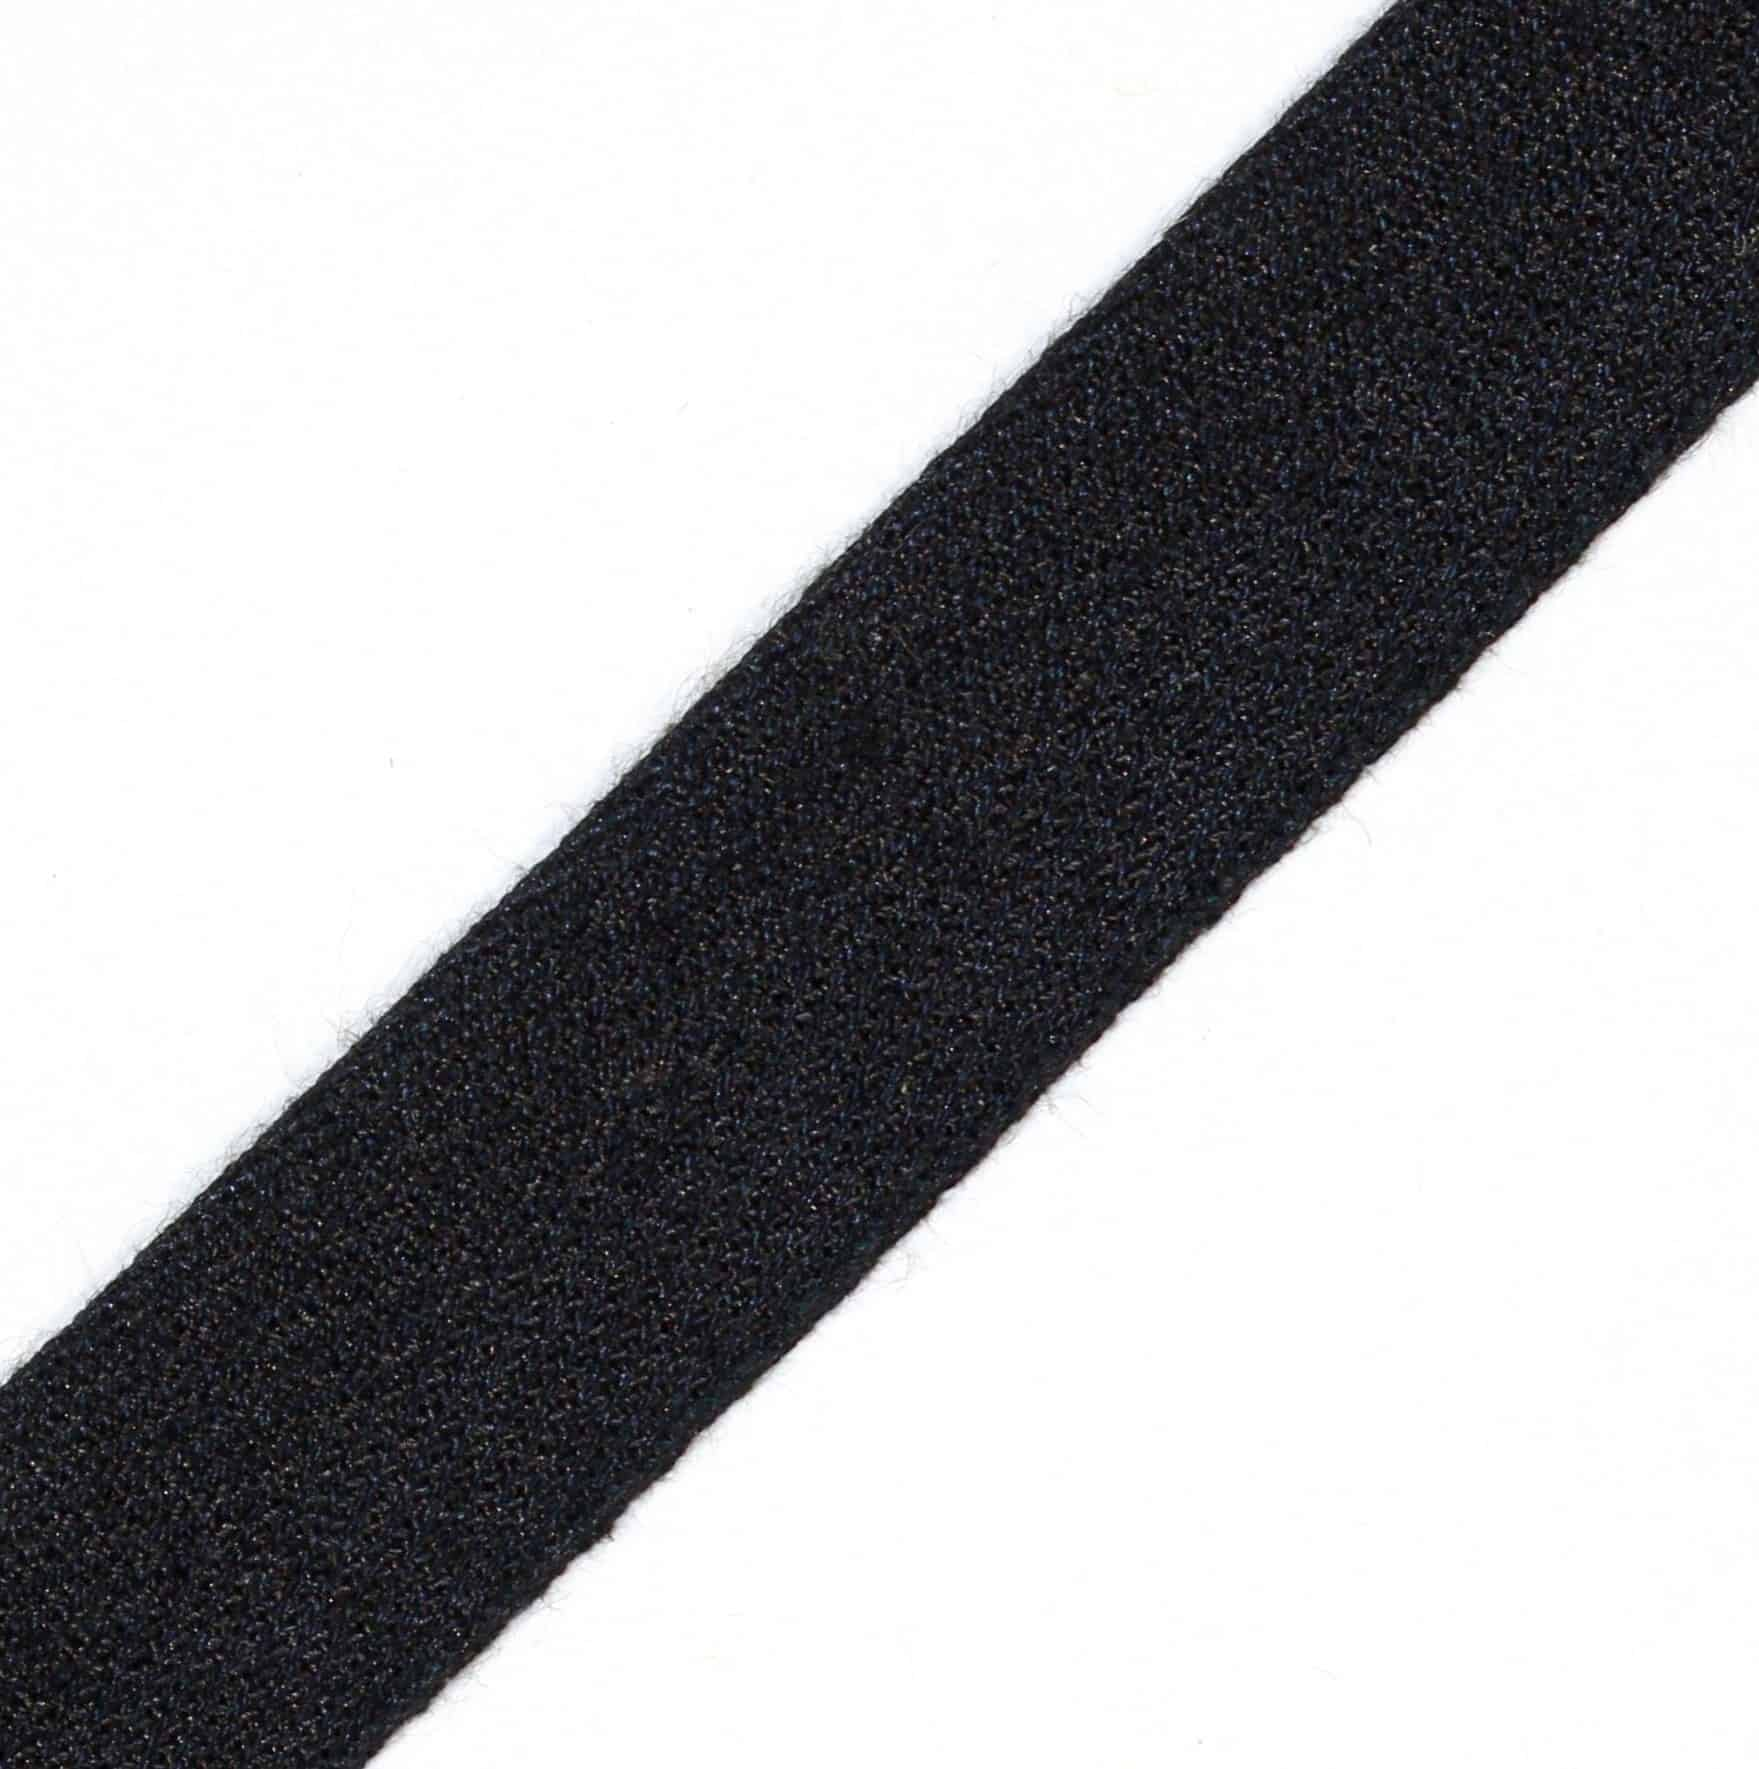 20mm Black Spun Kevlar® Tape Webbing